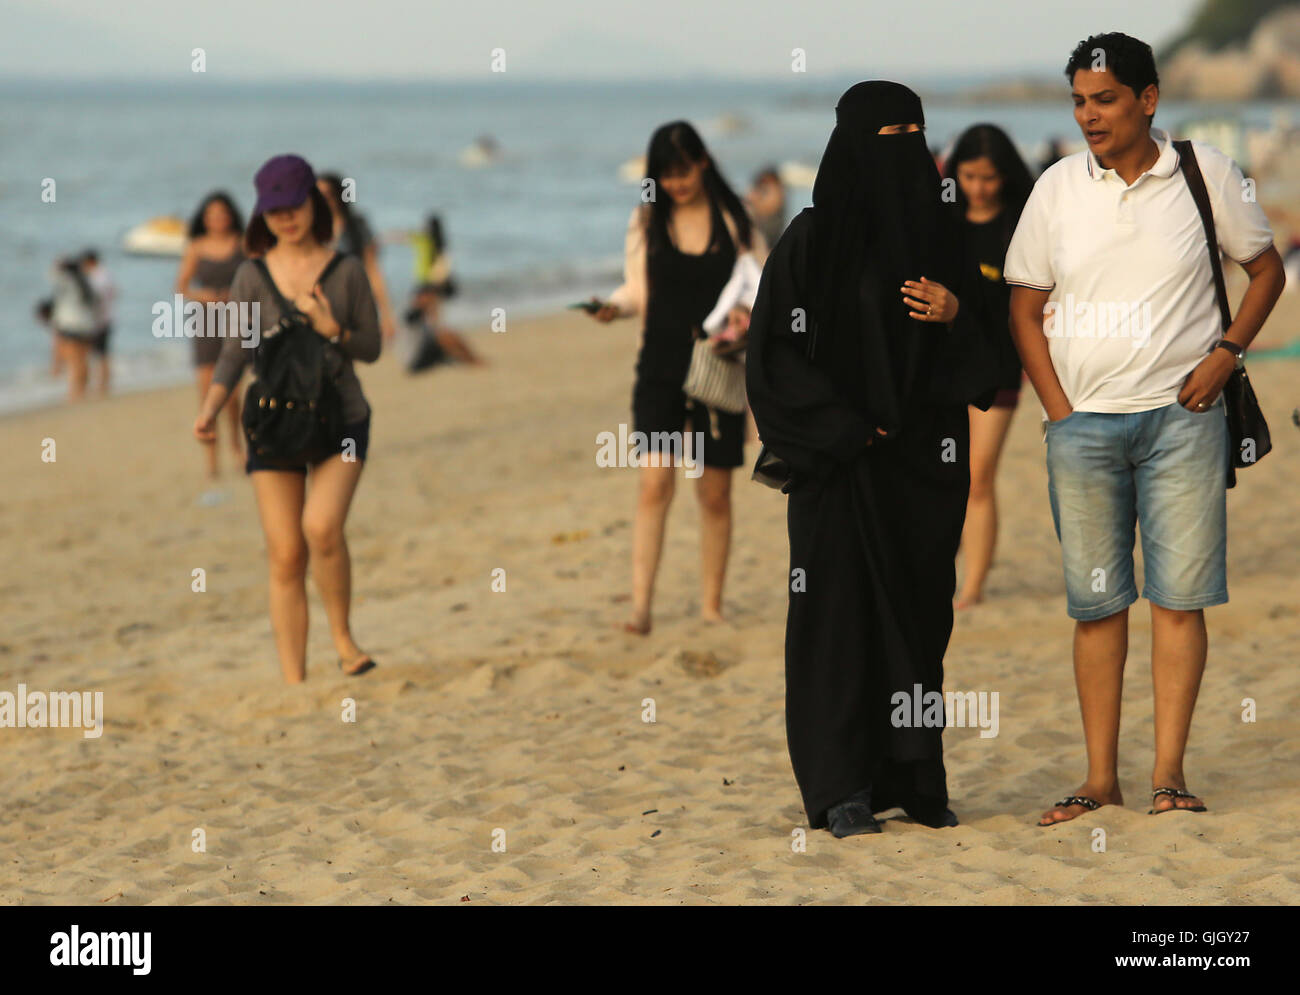 hall beach muslim personals Most notably, participants wear headscarves, there's no swimsuit competition and women's inner character and other islamic values such as charity, piety and intellect are prioritized over looks.